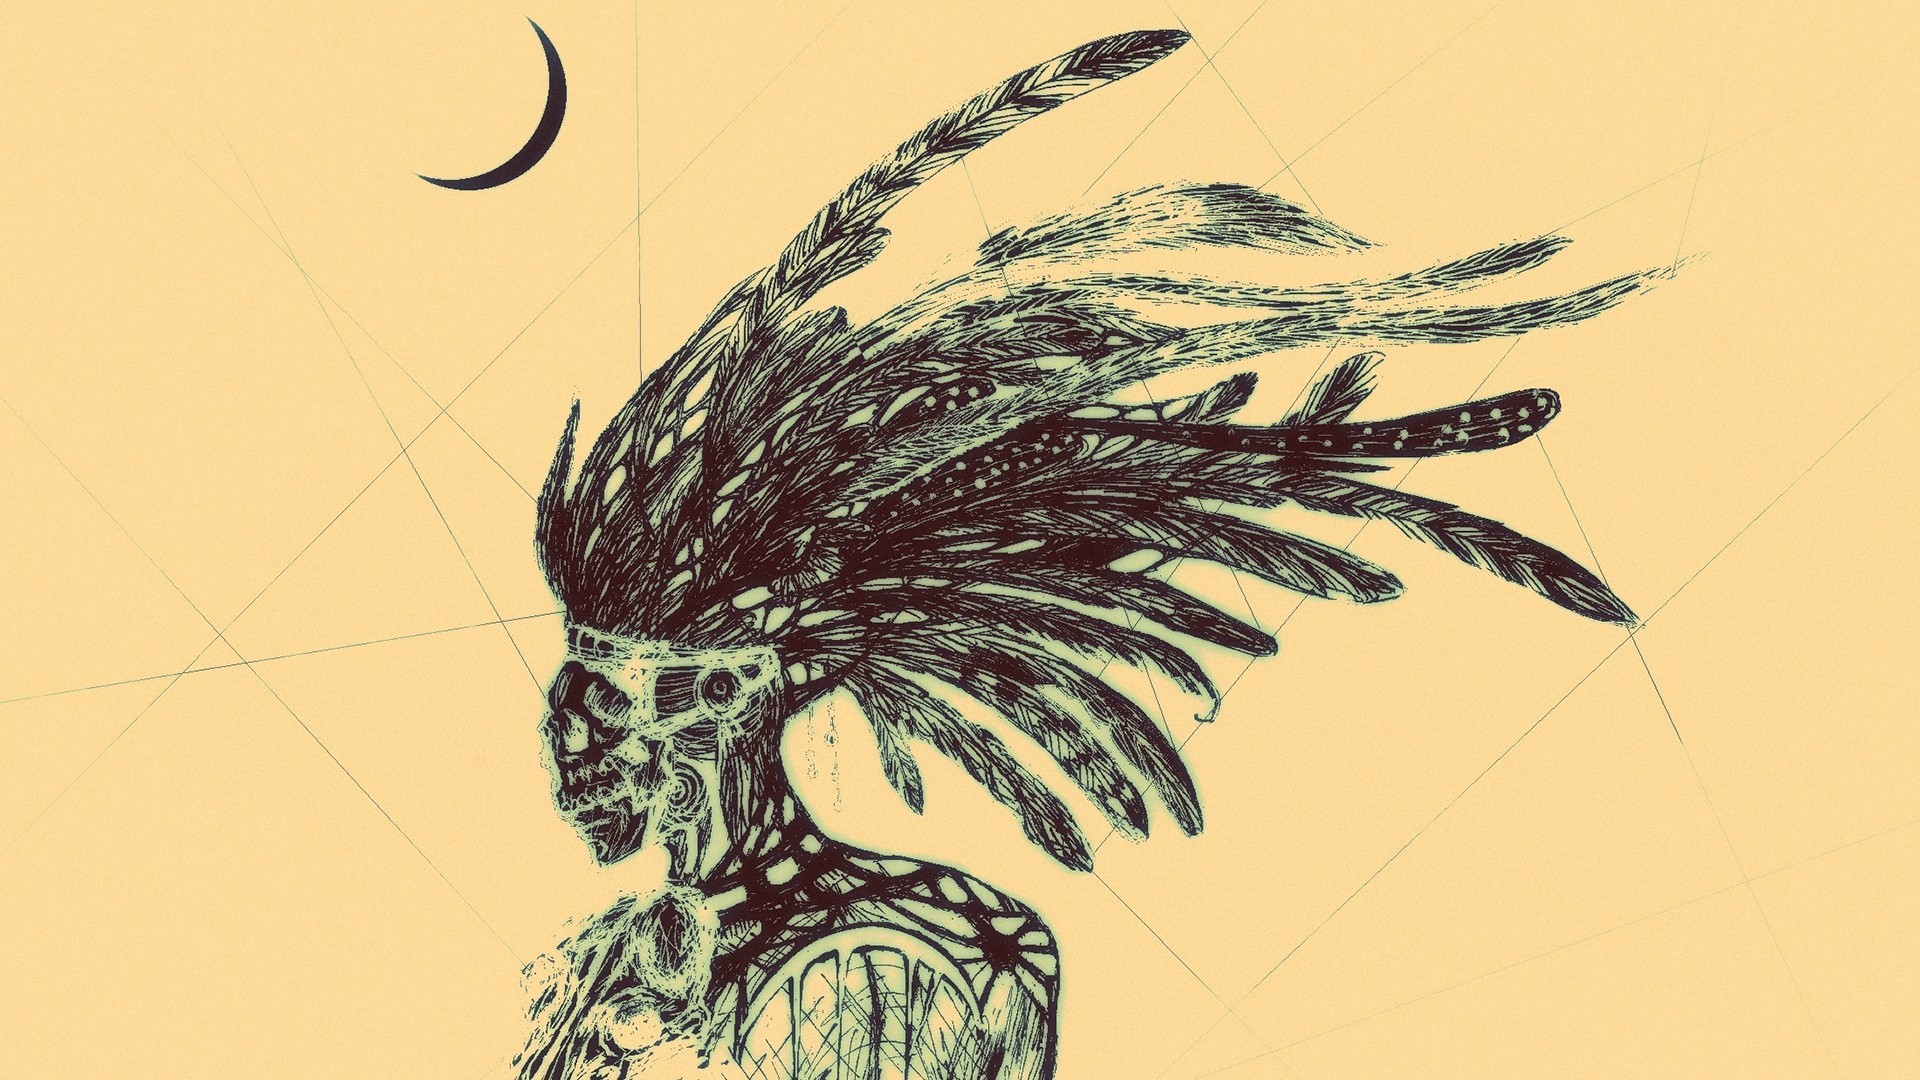 digital art, artwork, minimalism, selective coloring, lines, feathers,  skeleton,